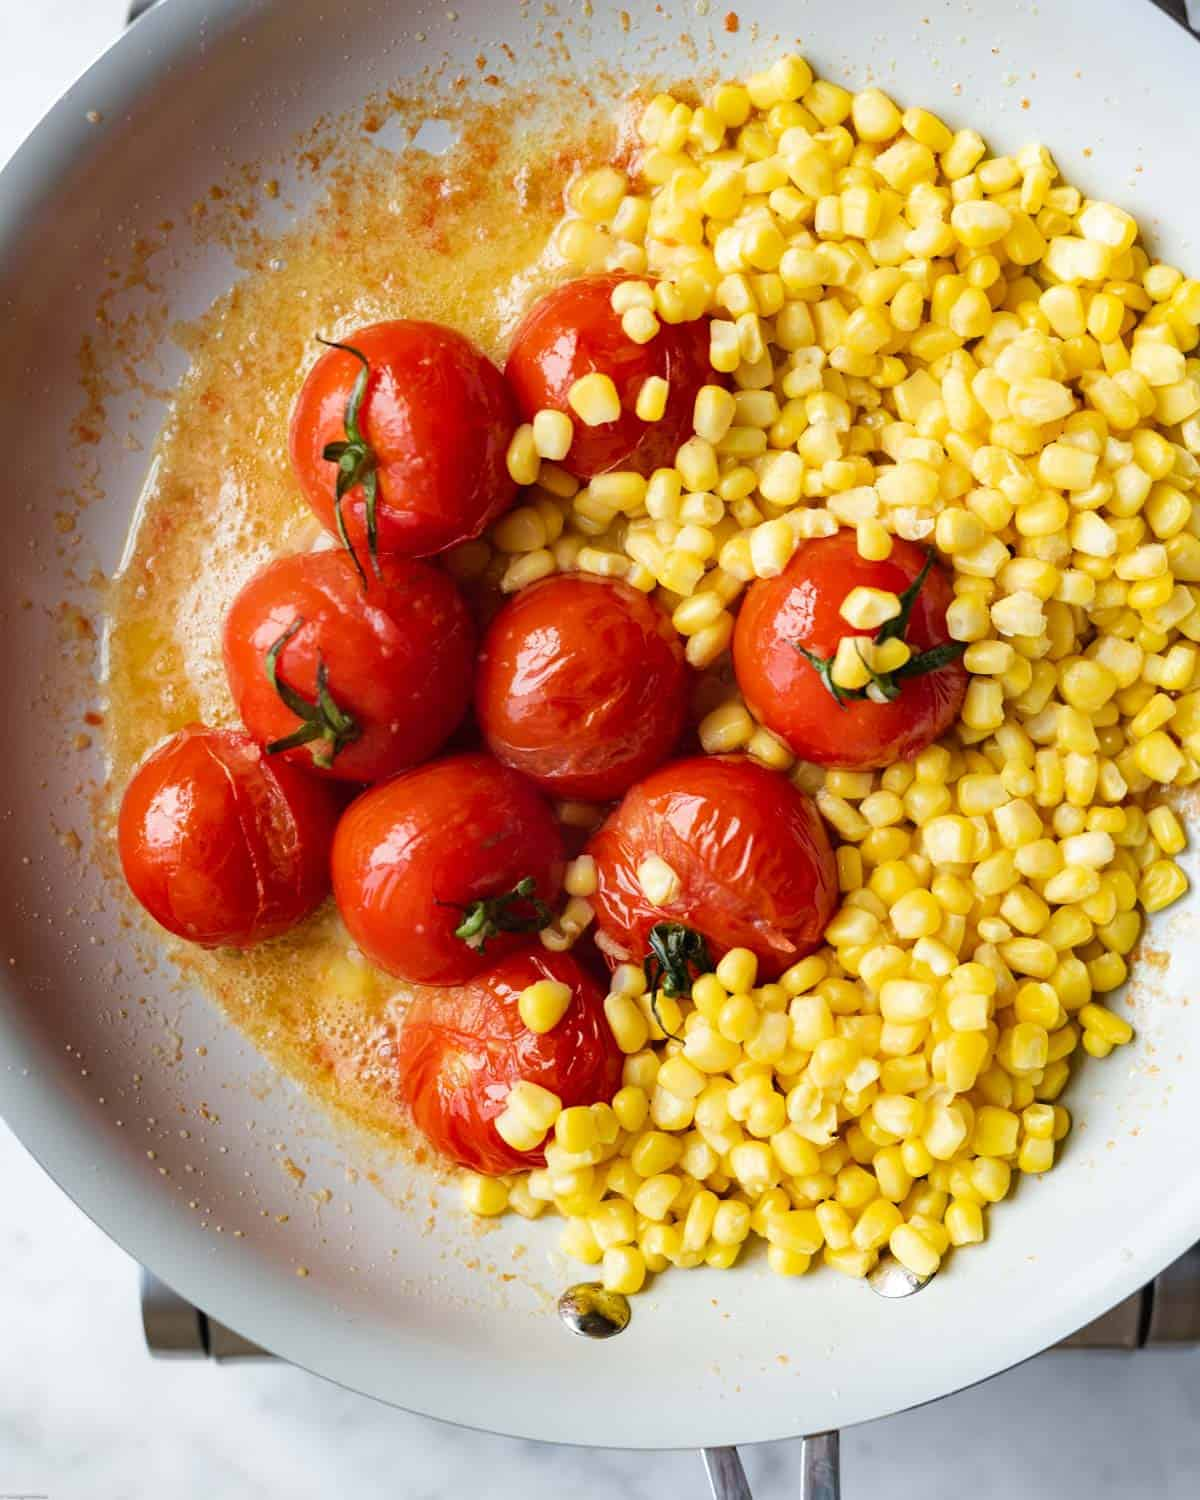 Sweet corn kernels and burst tomatoes cooking in a large skillet.